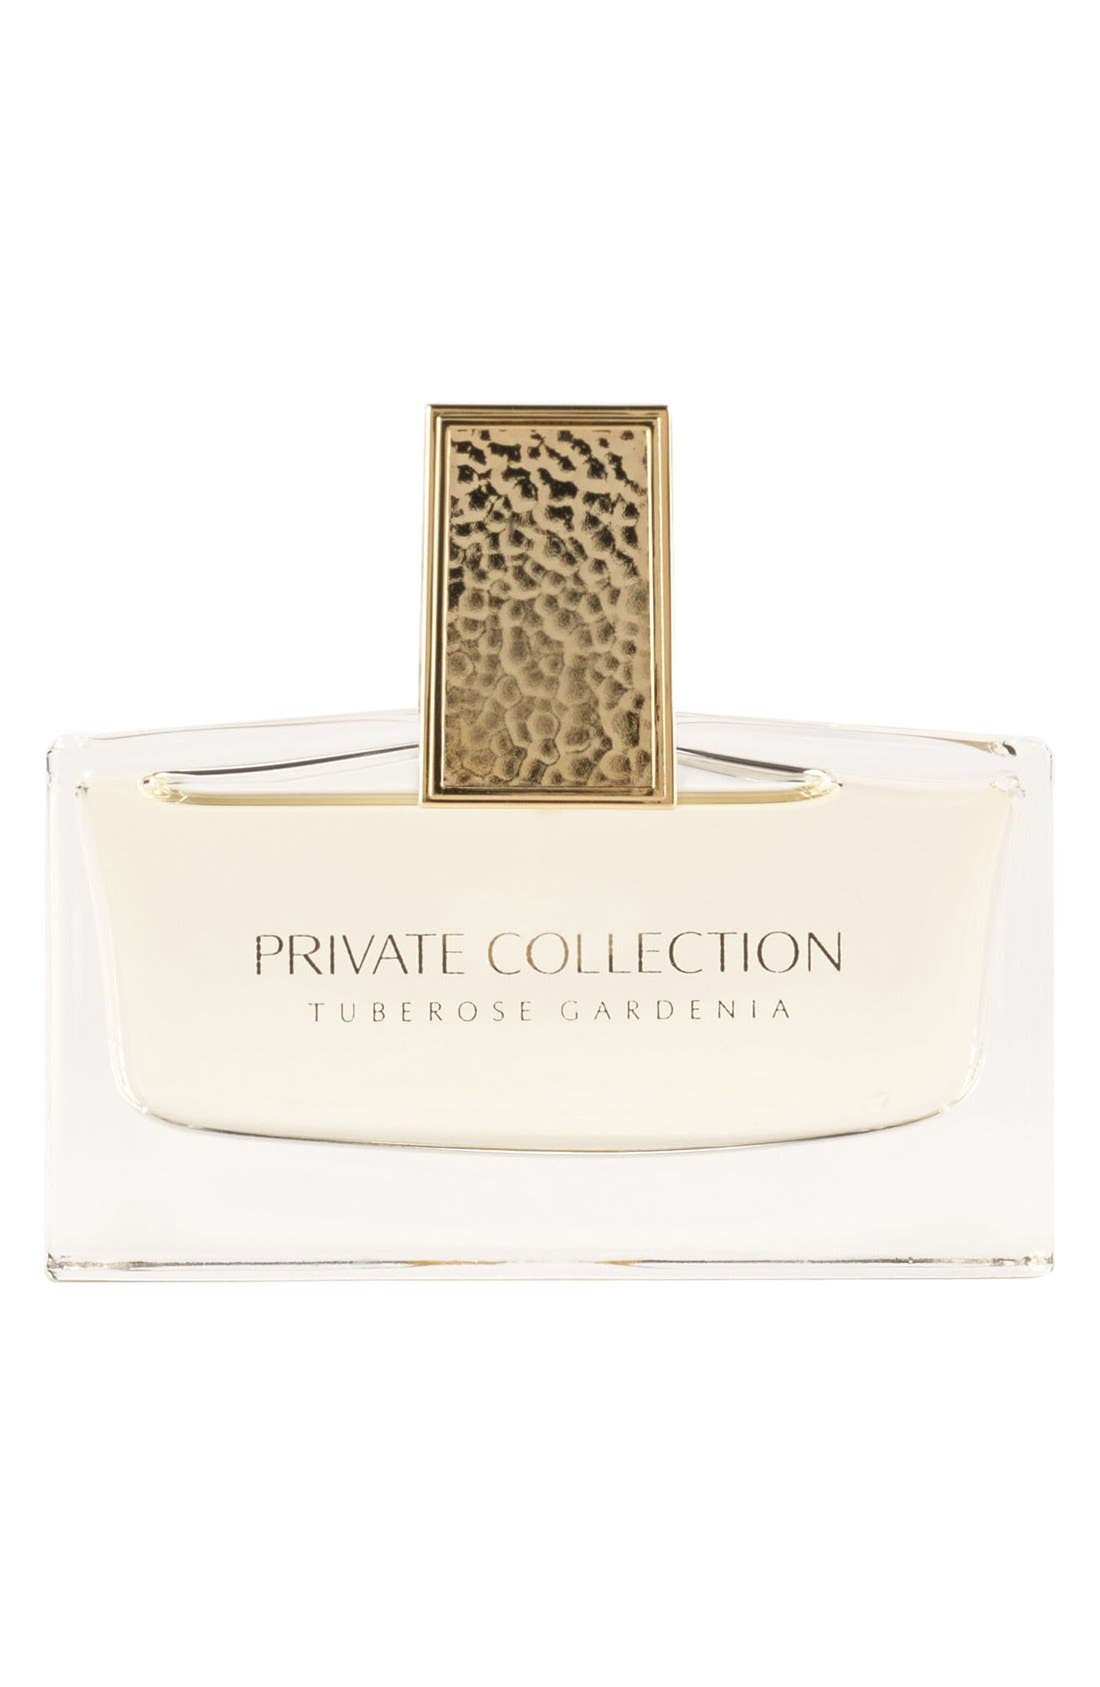 Private Collection Tuberose Gardenia Eau de Parfum Spray,                         Main,                         color, NO COLOR